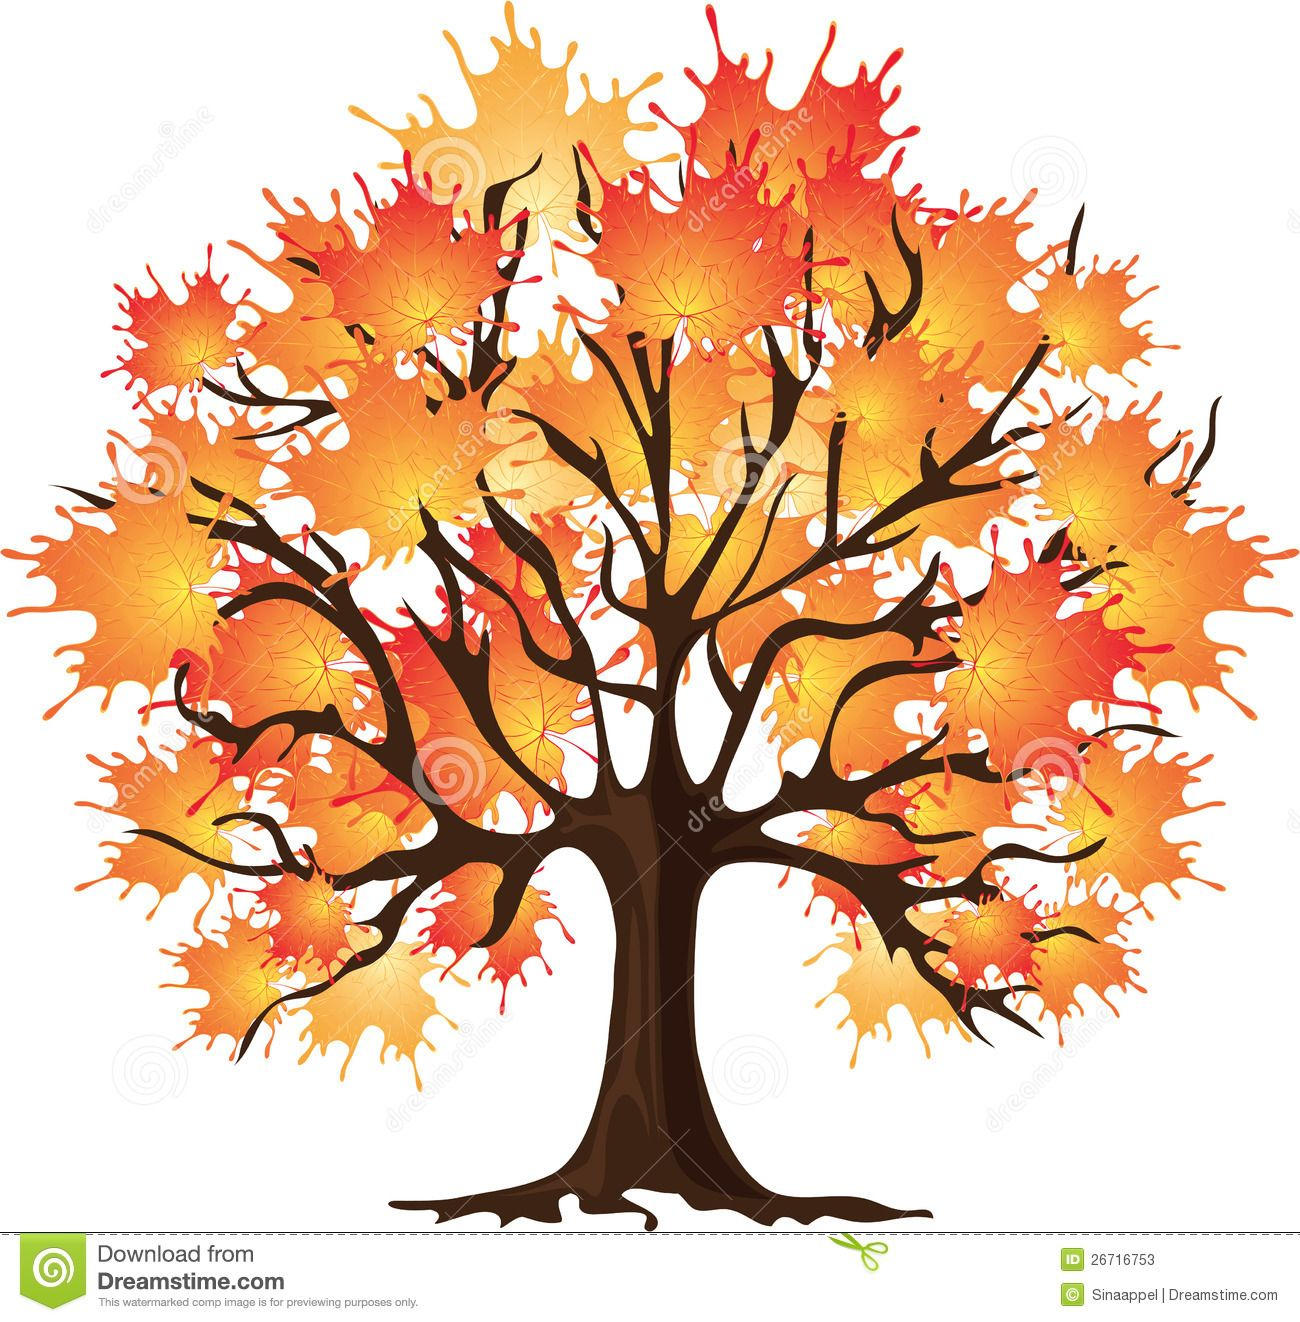 fall clip art free animated fall tree clip art art autumn tree rh pinterest com fall clipart free black and white fall clipart images